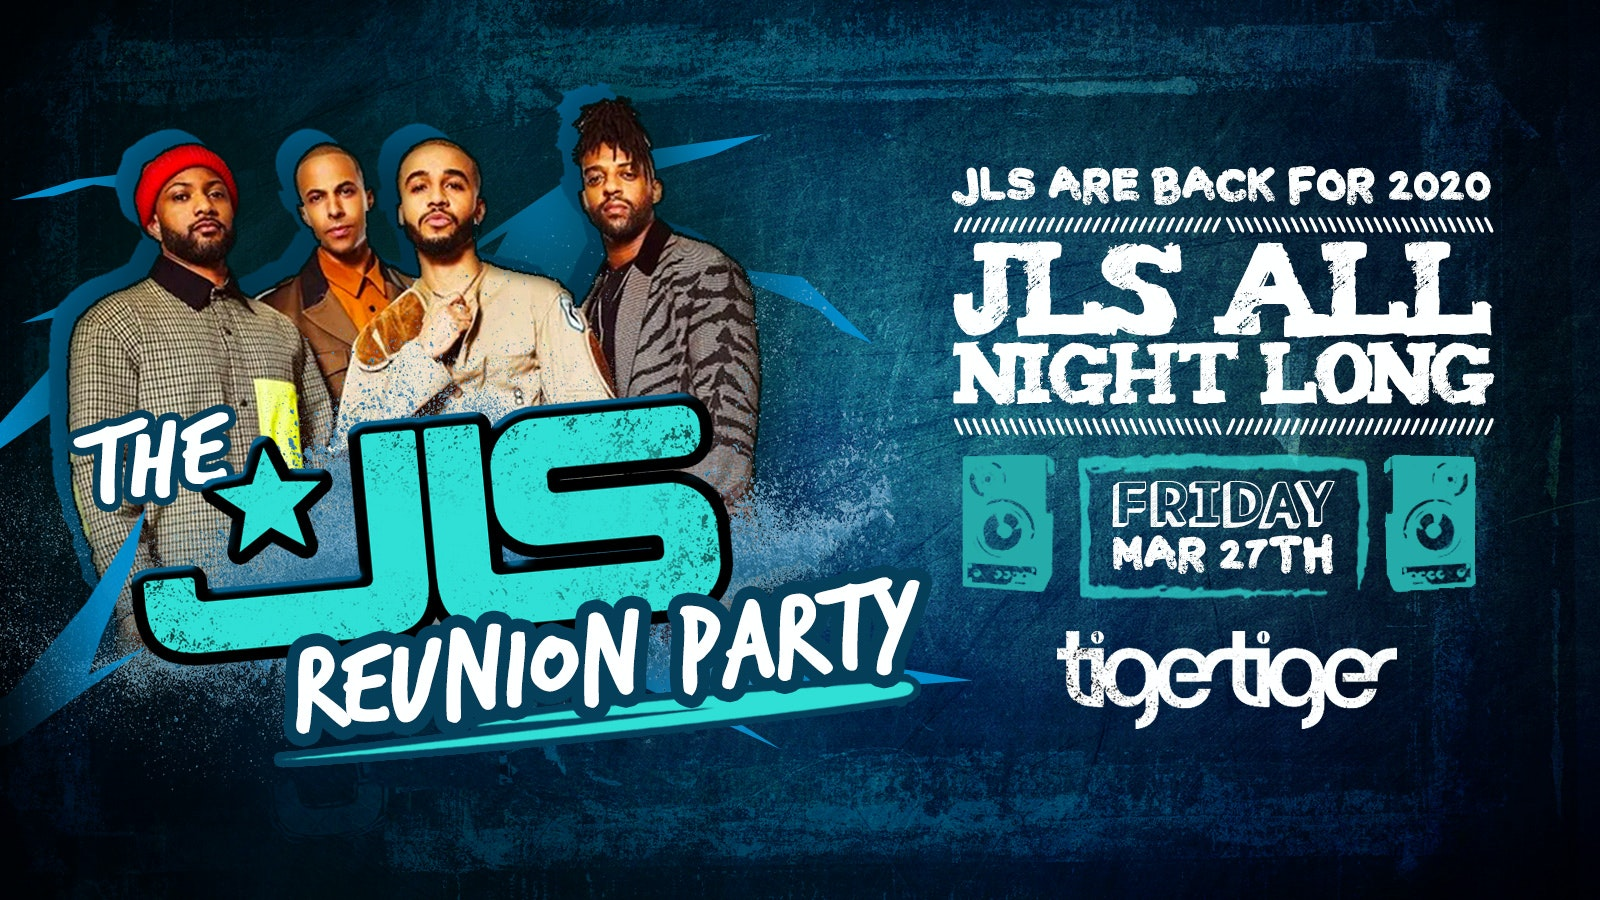 [Postponed Until After Coronavirus] – JLS Reunion Party – London